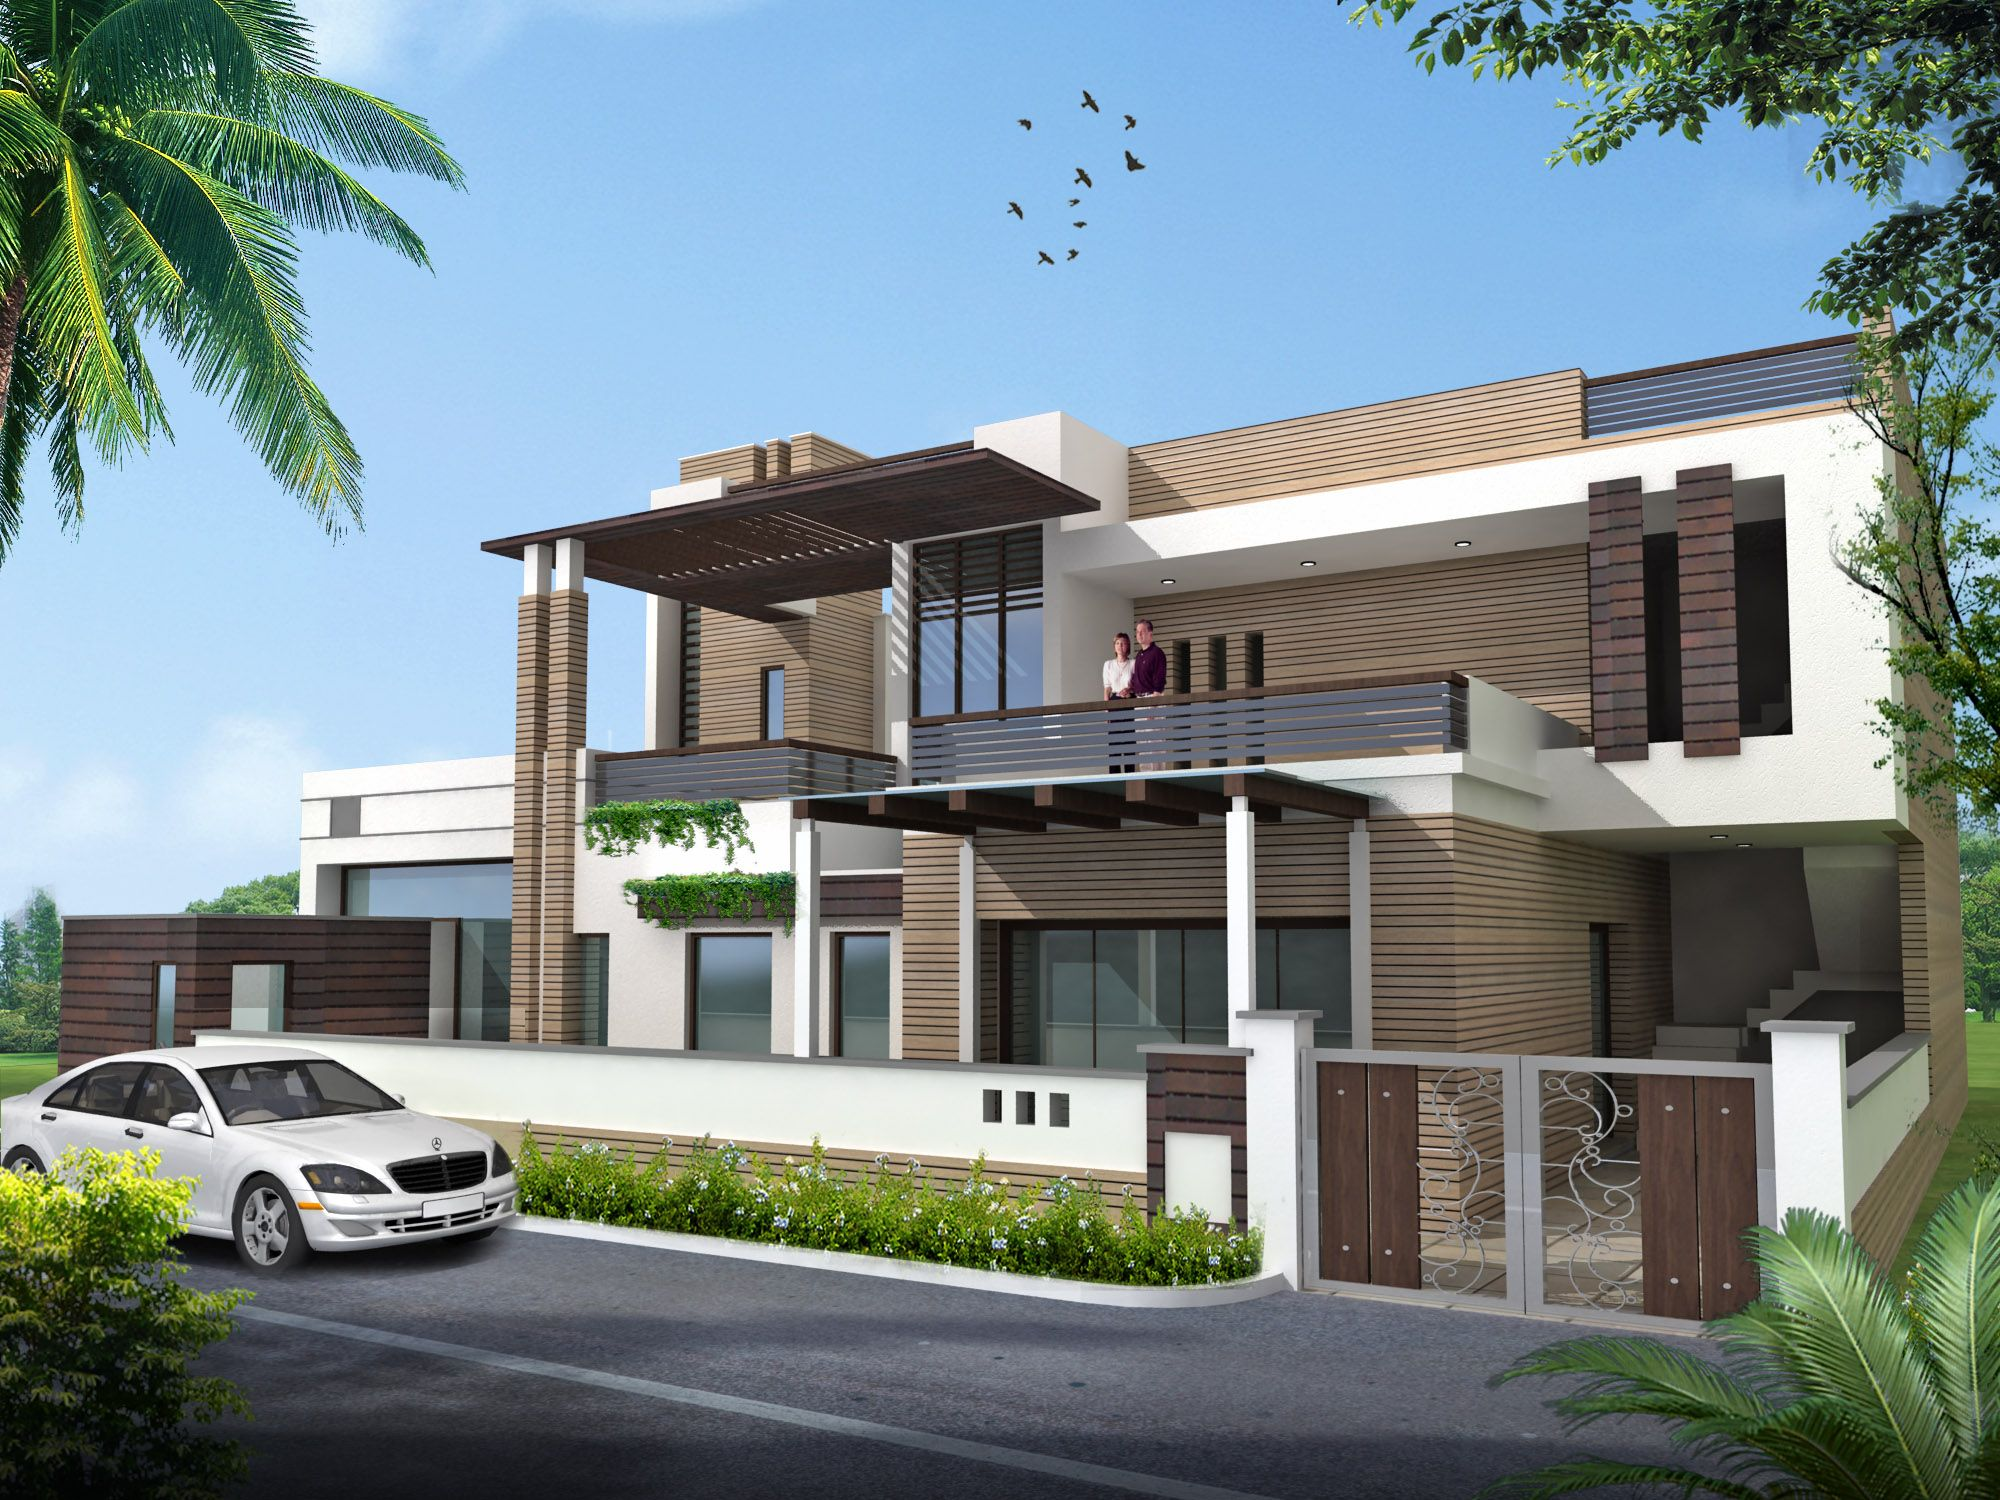 Ultimate House Designs With House Plans: Featuring Indi By Vidhi Shankar,  Via Behance